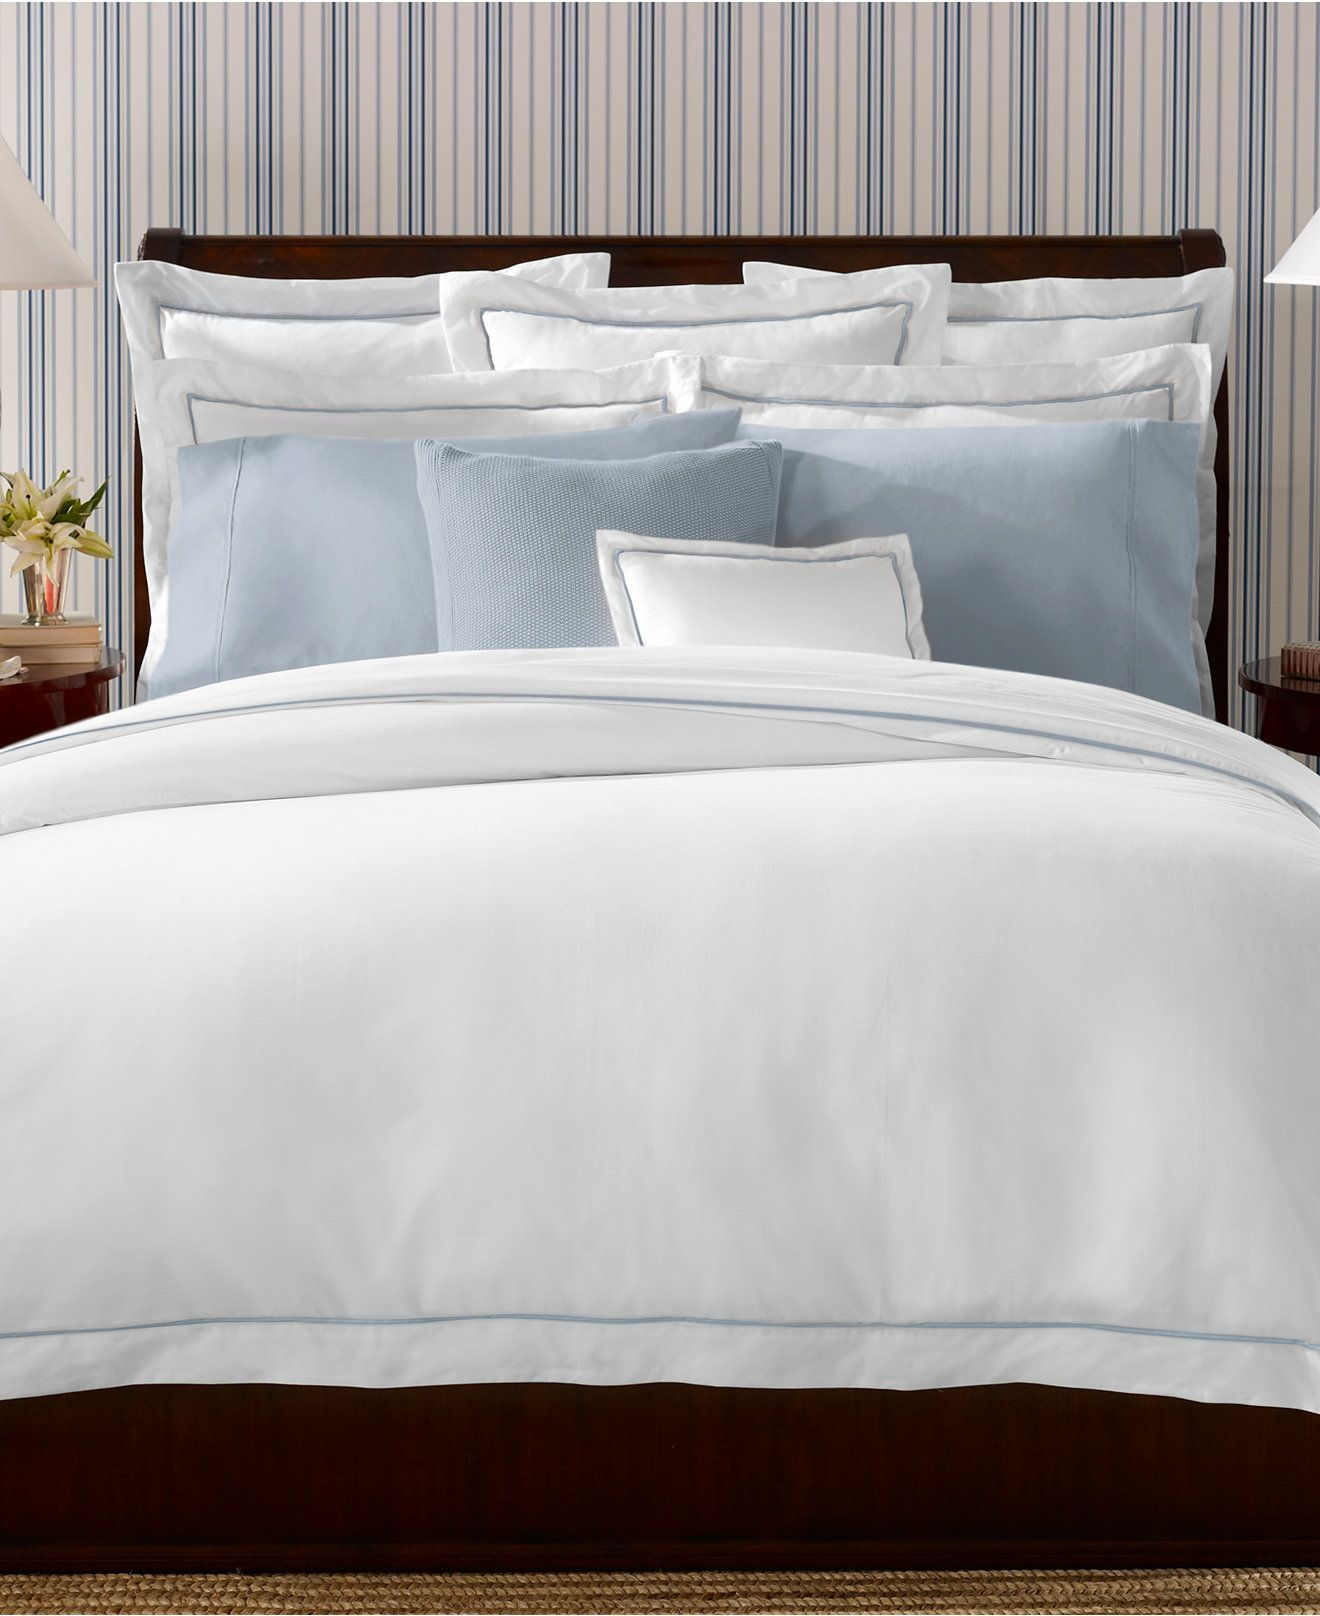 Ralph Lauren Palmer Collection Clic Bedding Collections Bed Bath Macy S Bridal And Wedding Registry